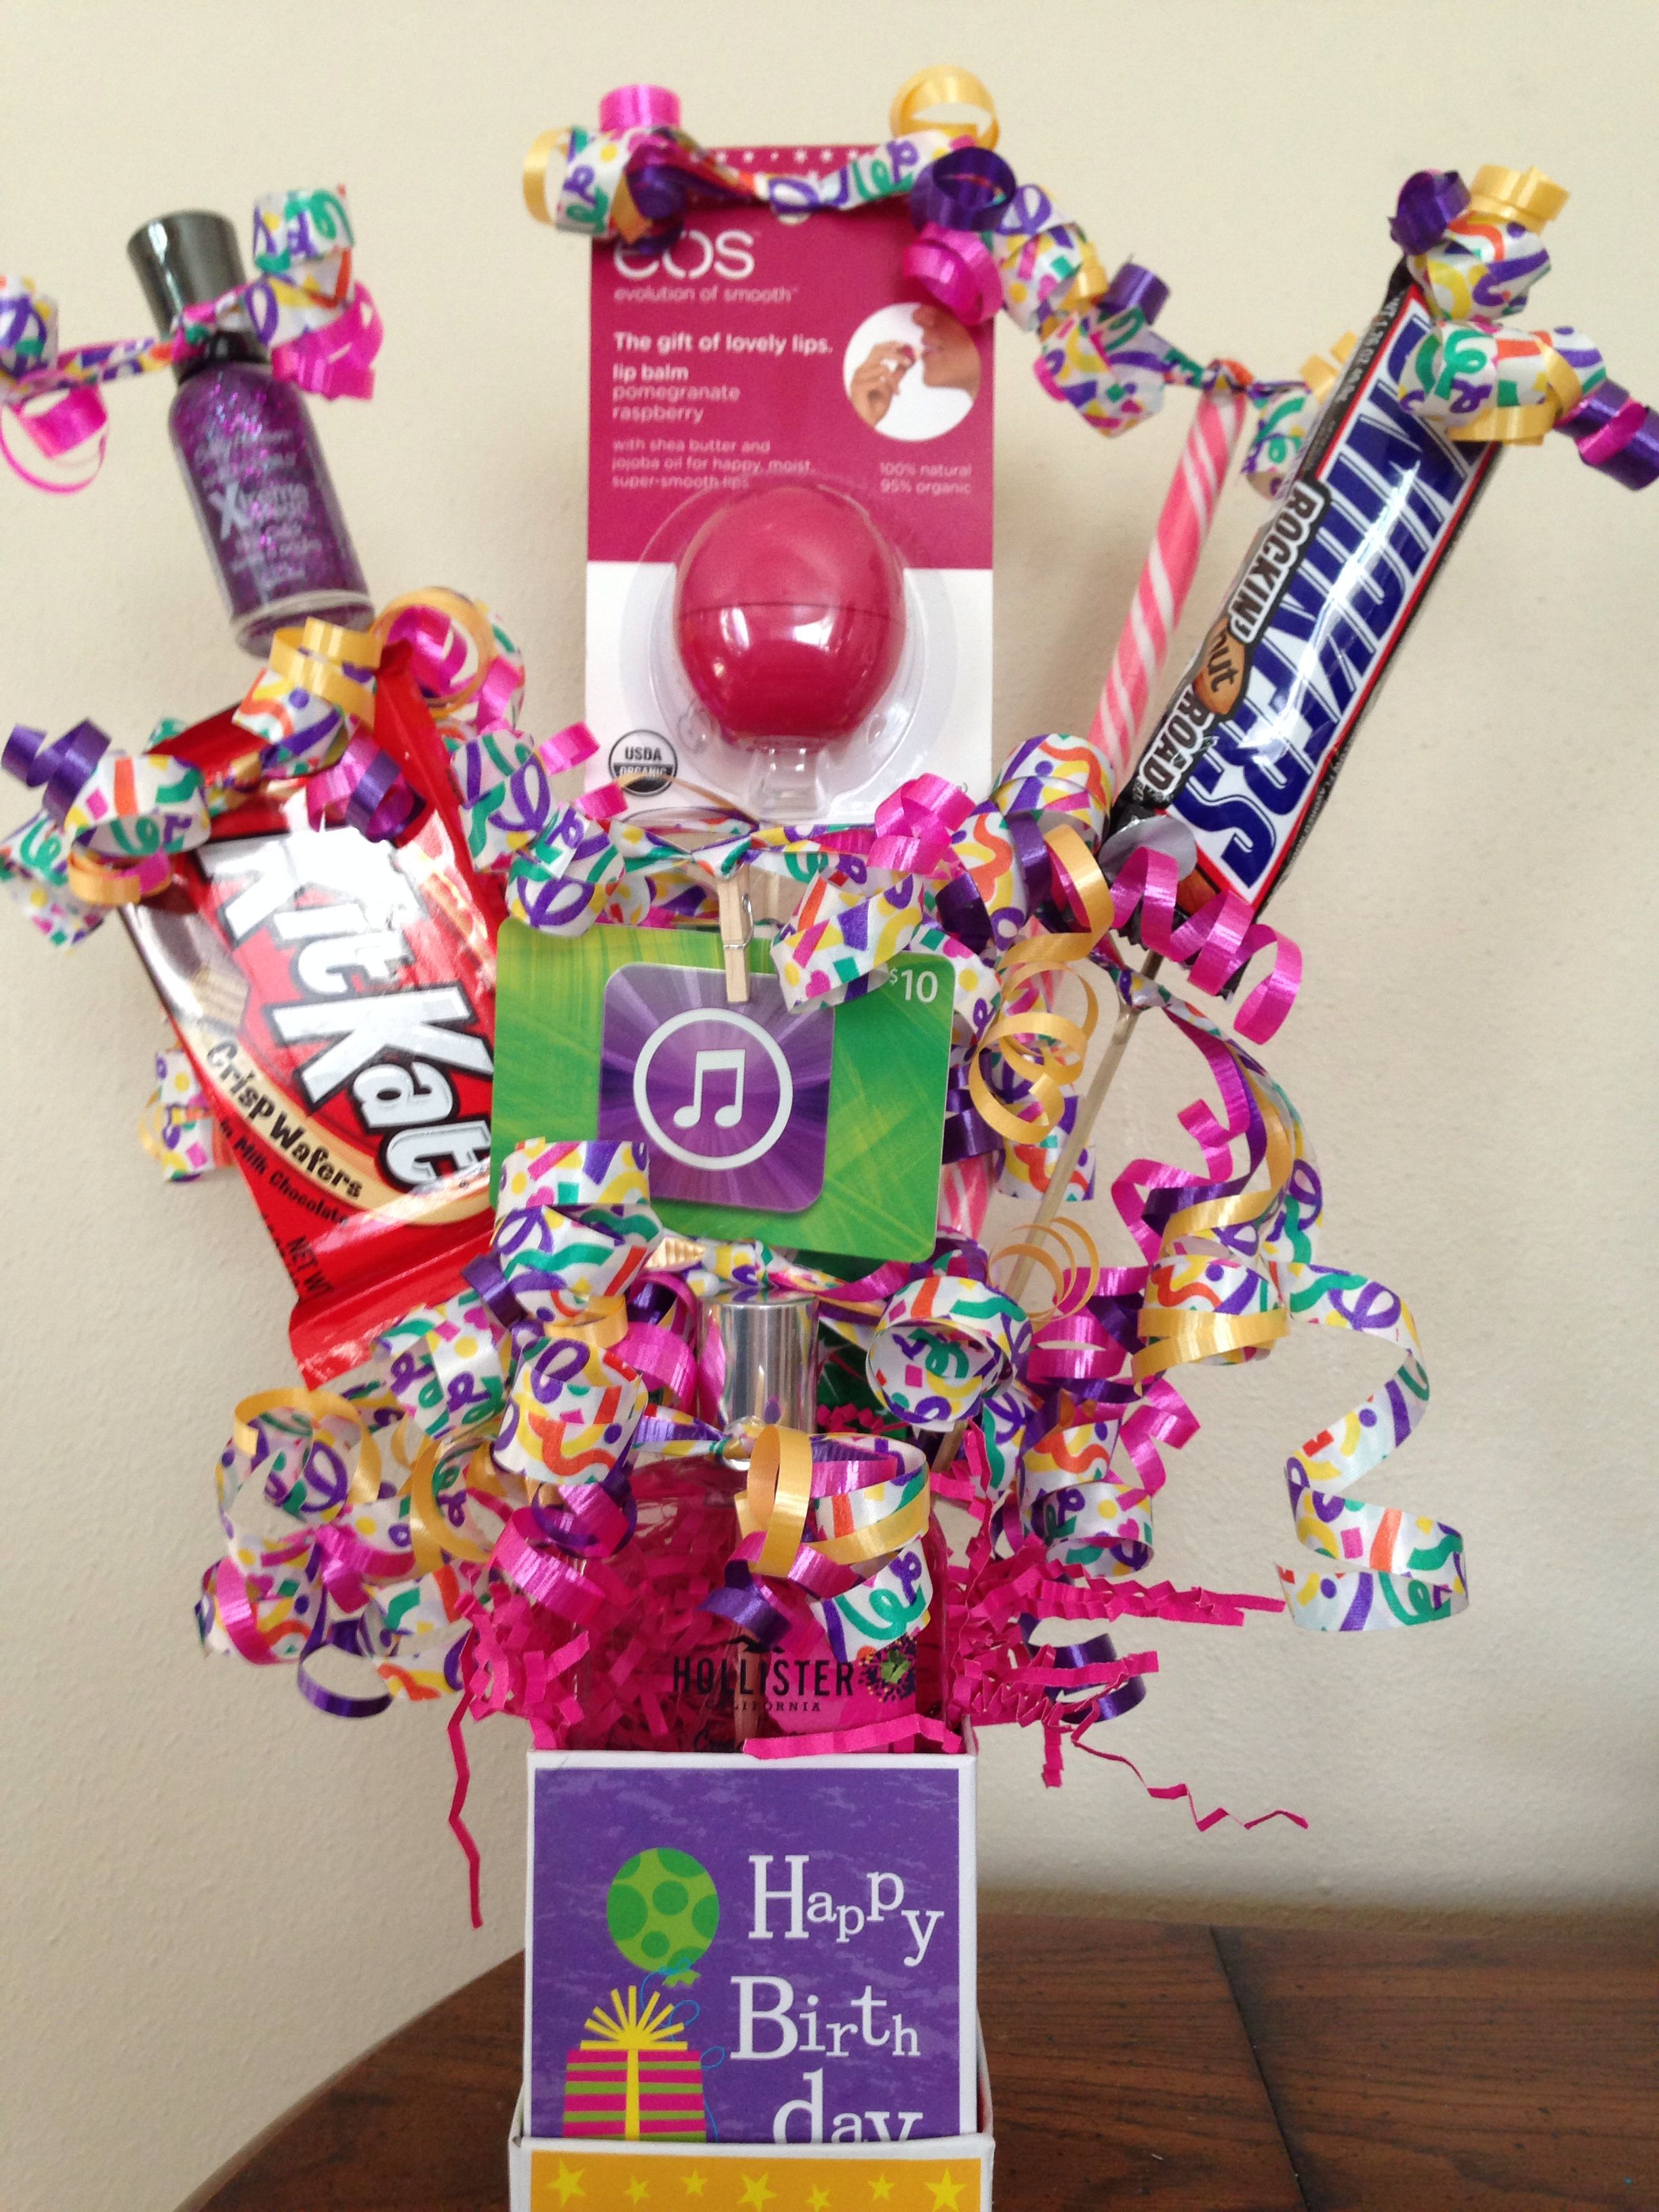 How Do It on Birthday gifts for teens, Birthday gift